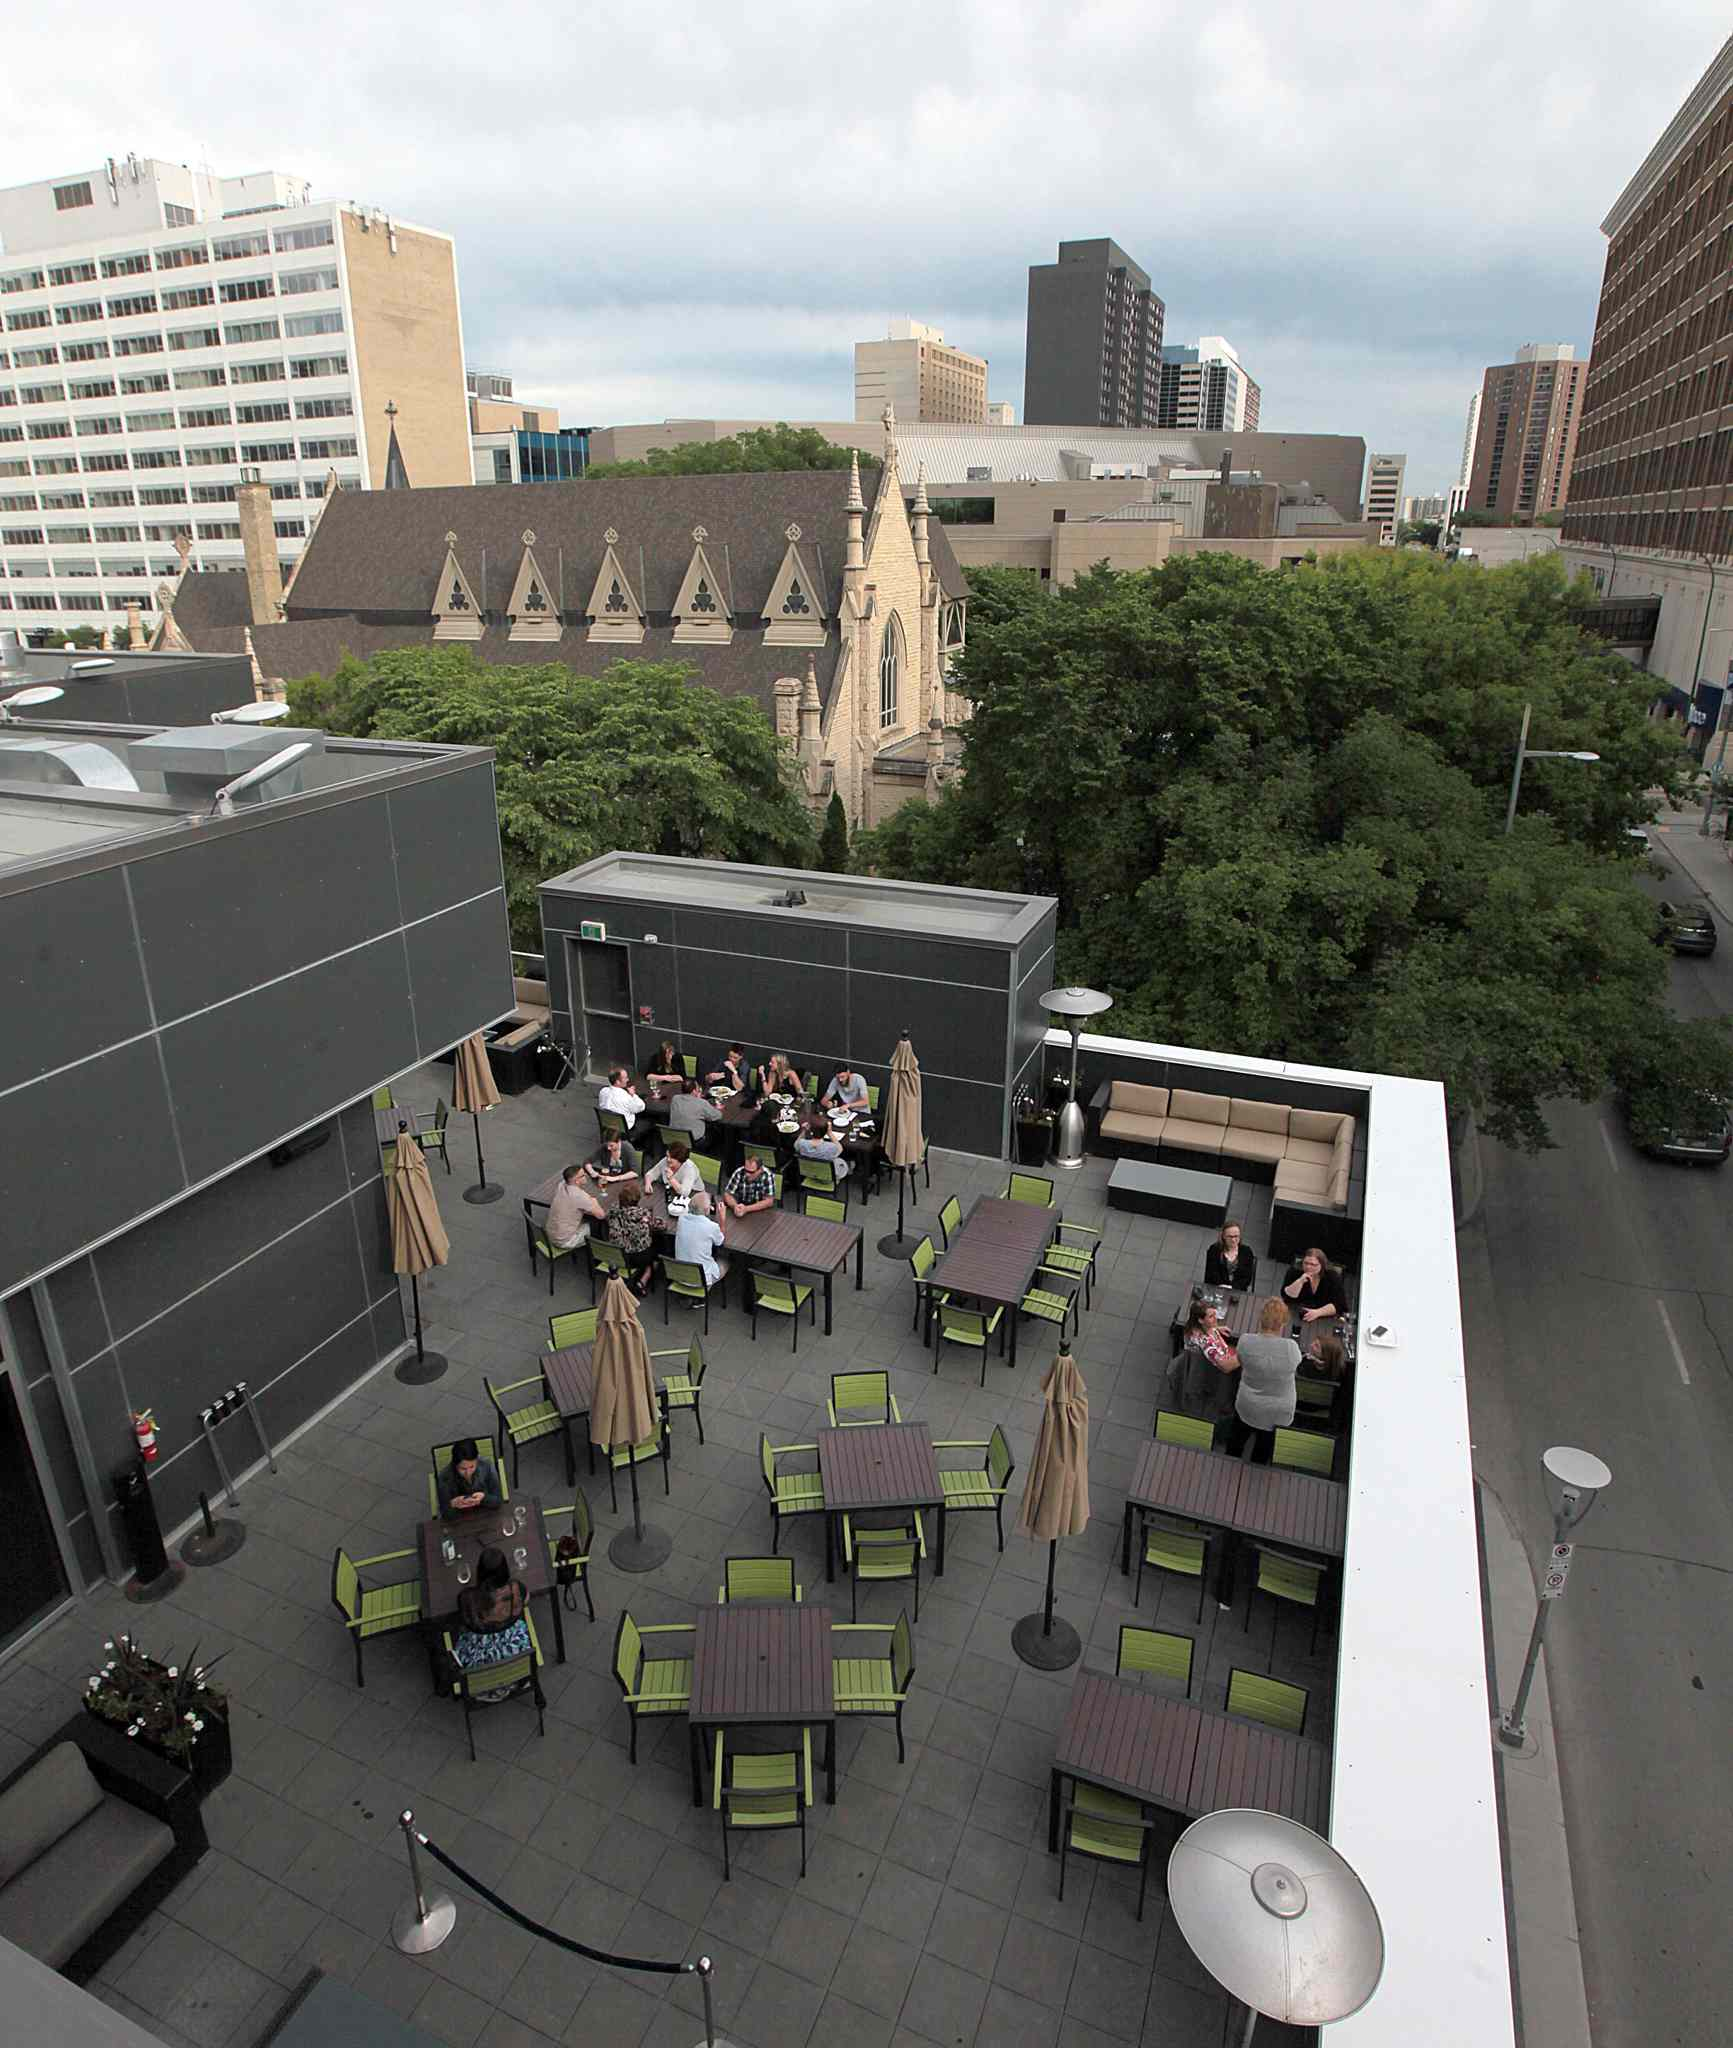 Movin On Up Winnipeg Free Press - Rooftop patios